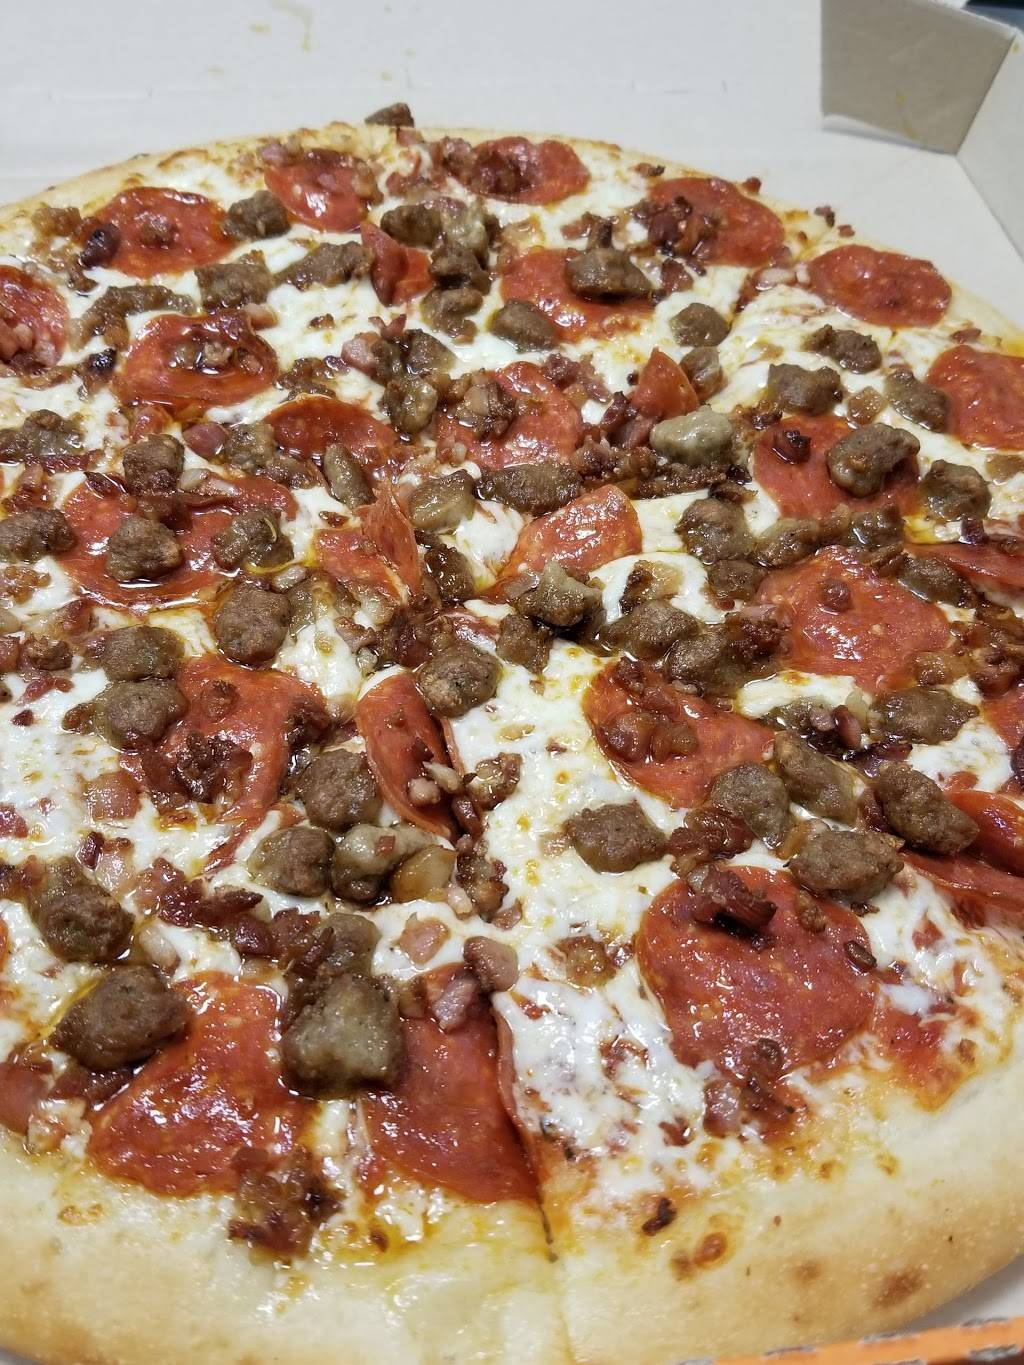 Little Caesars Pizza | meal takeaway | 300 Wyckoff Ave, Brooklyn, NY 11237, USA | 7184180307 OR +1 718-418-0307